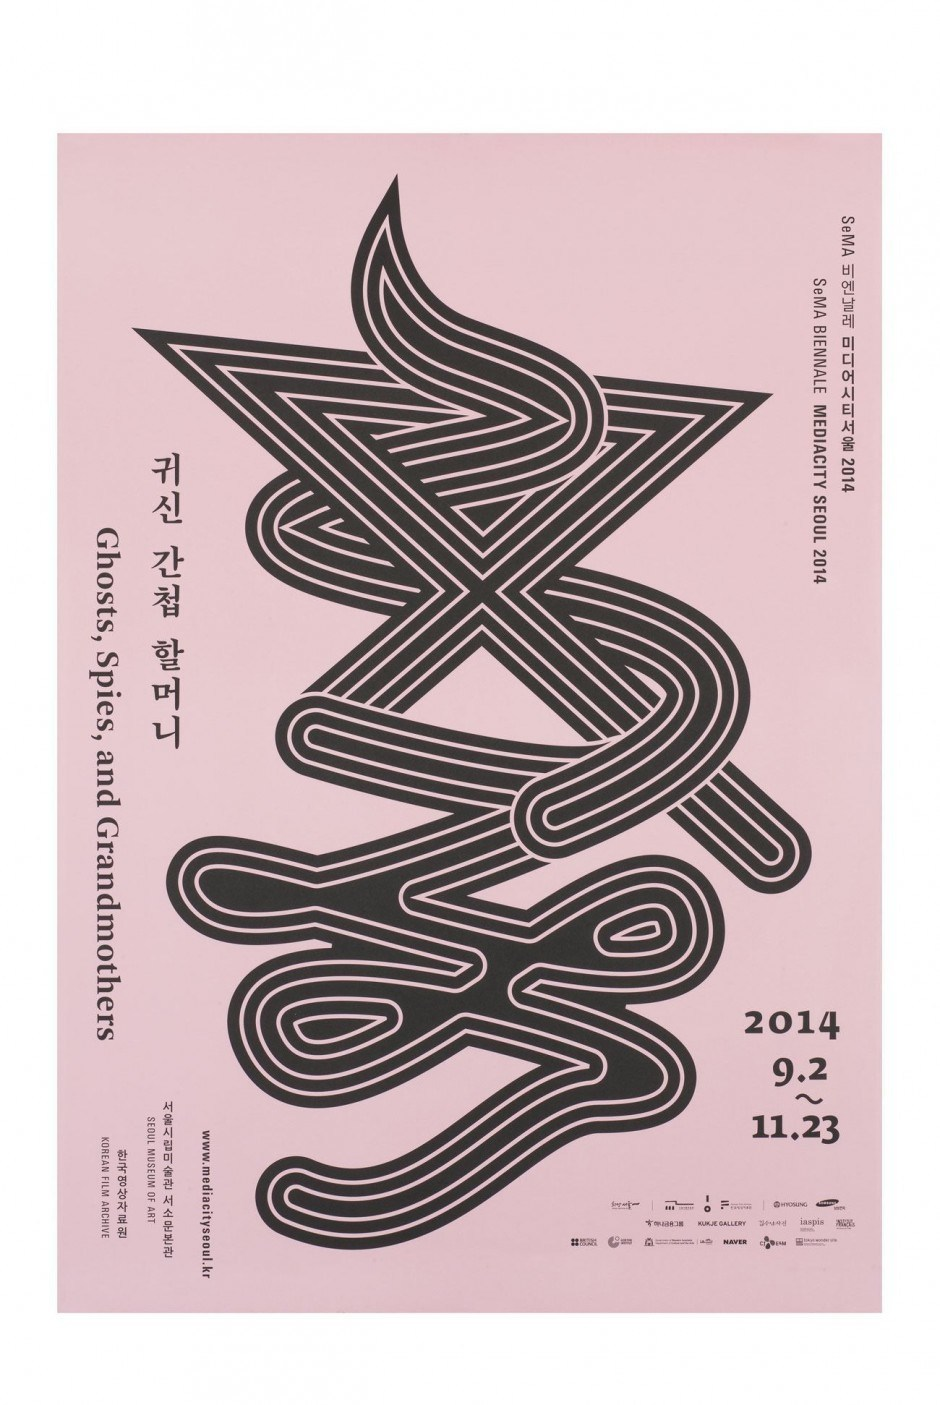 JUNG Jin-yeoul (Jin Jung), exposition »Ghosts, spies and grandmothers«, Mediacity Seoul Biennale, Poster, 2014